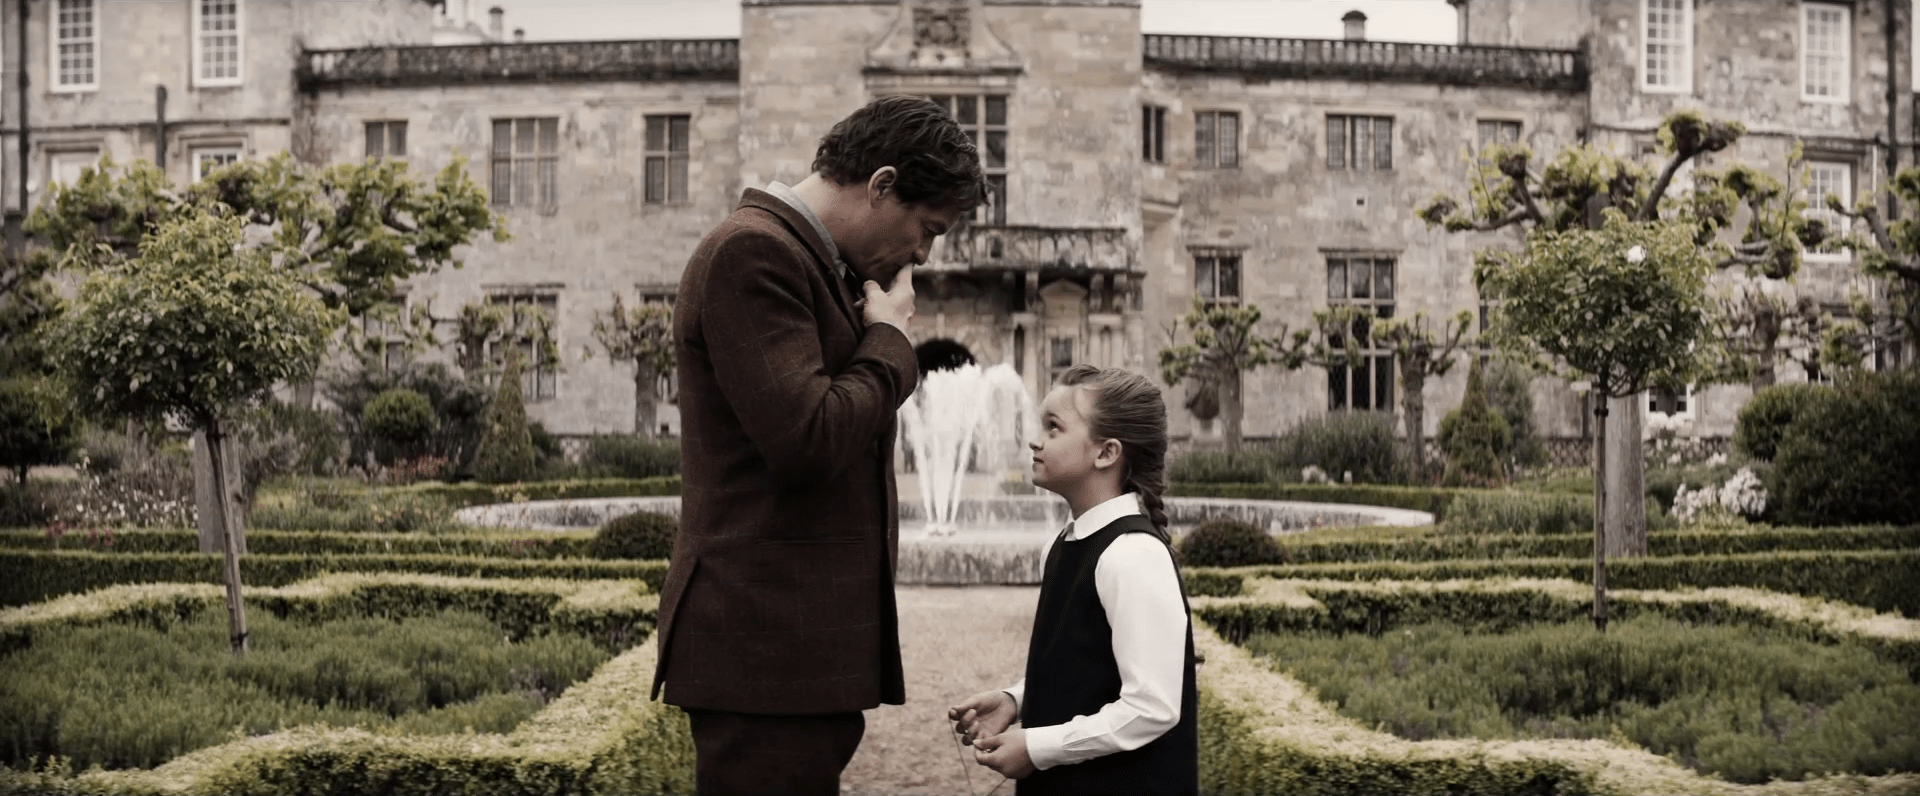 Lord_Croft_and_Young_Lara_Infront_of_Croft_Manor.png